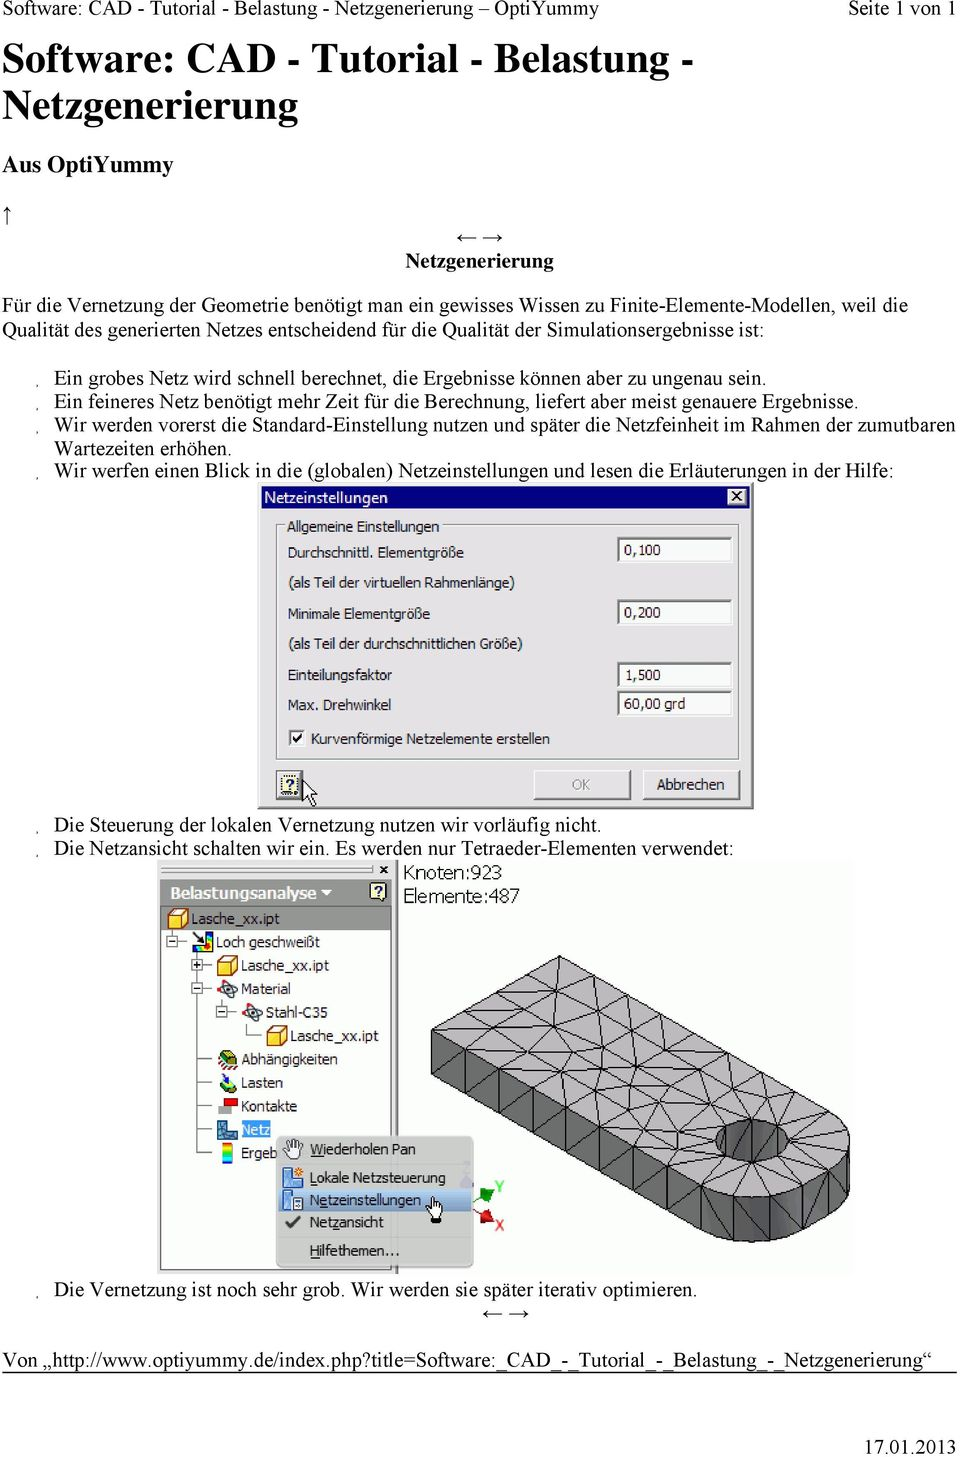 Software: CAD - Tutorial - Belastungsanalyse - PDF